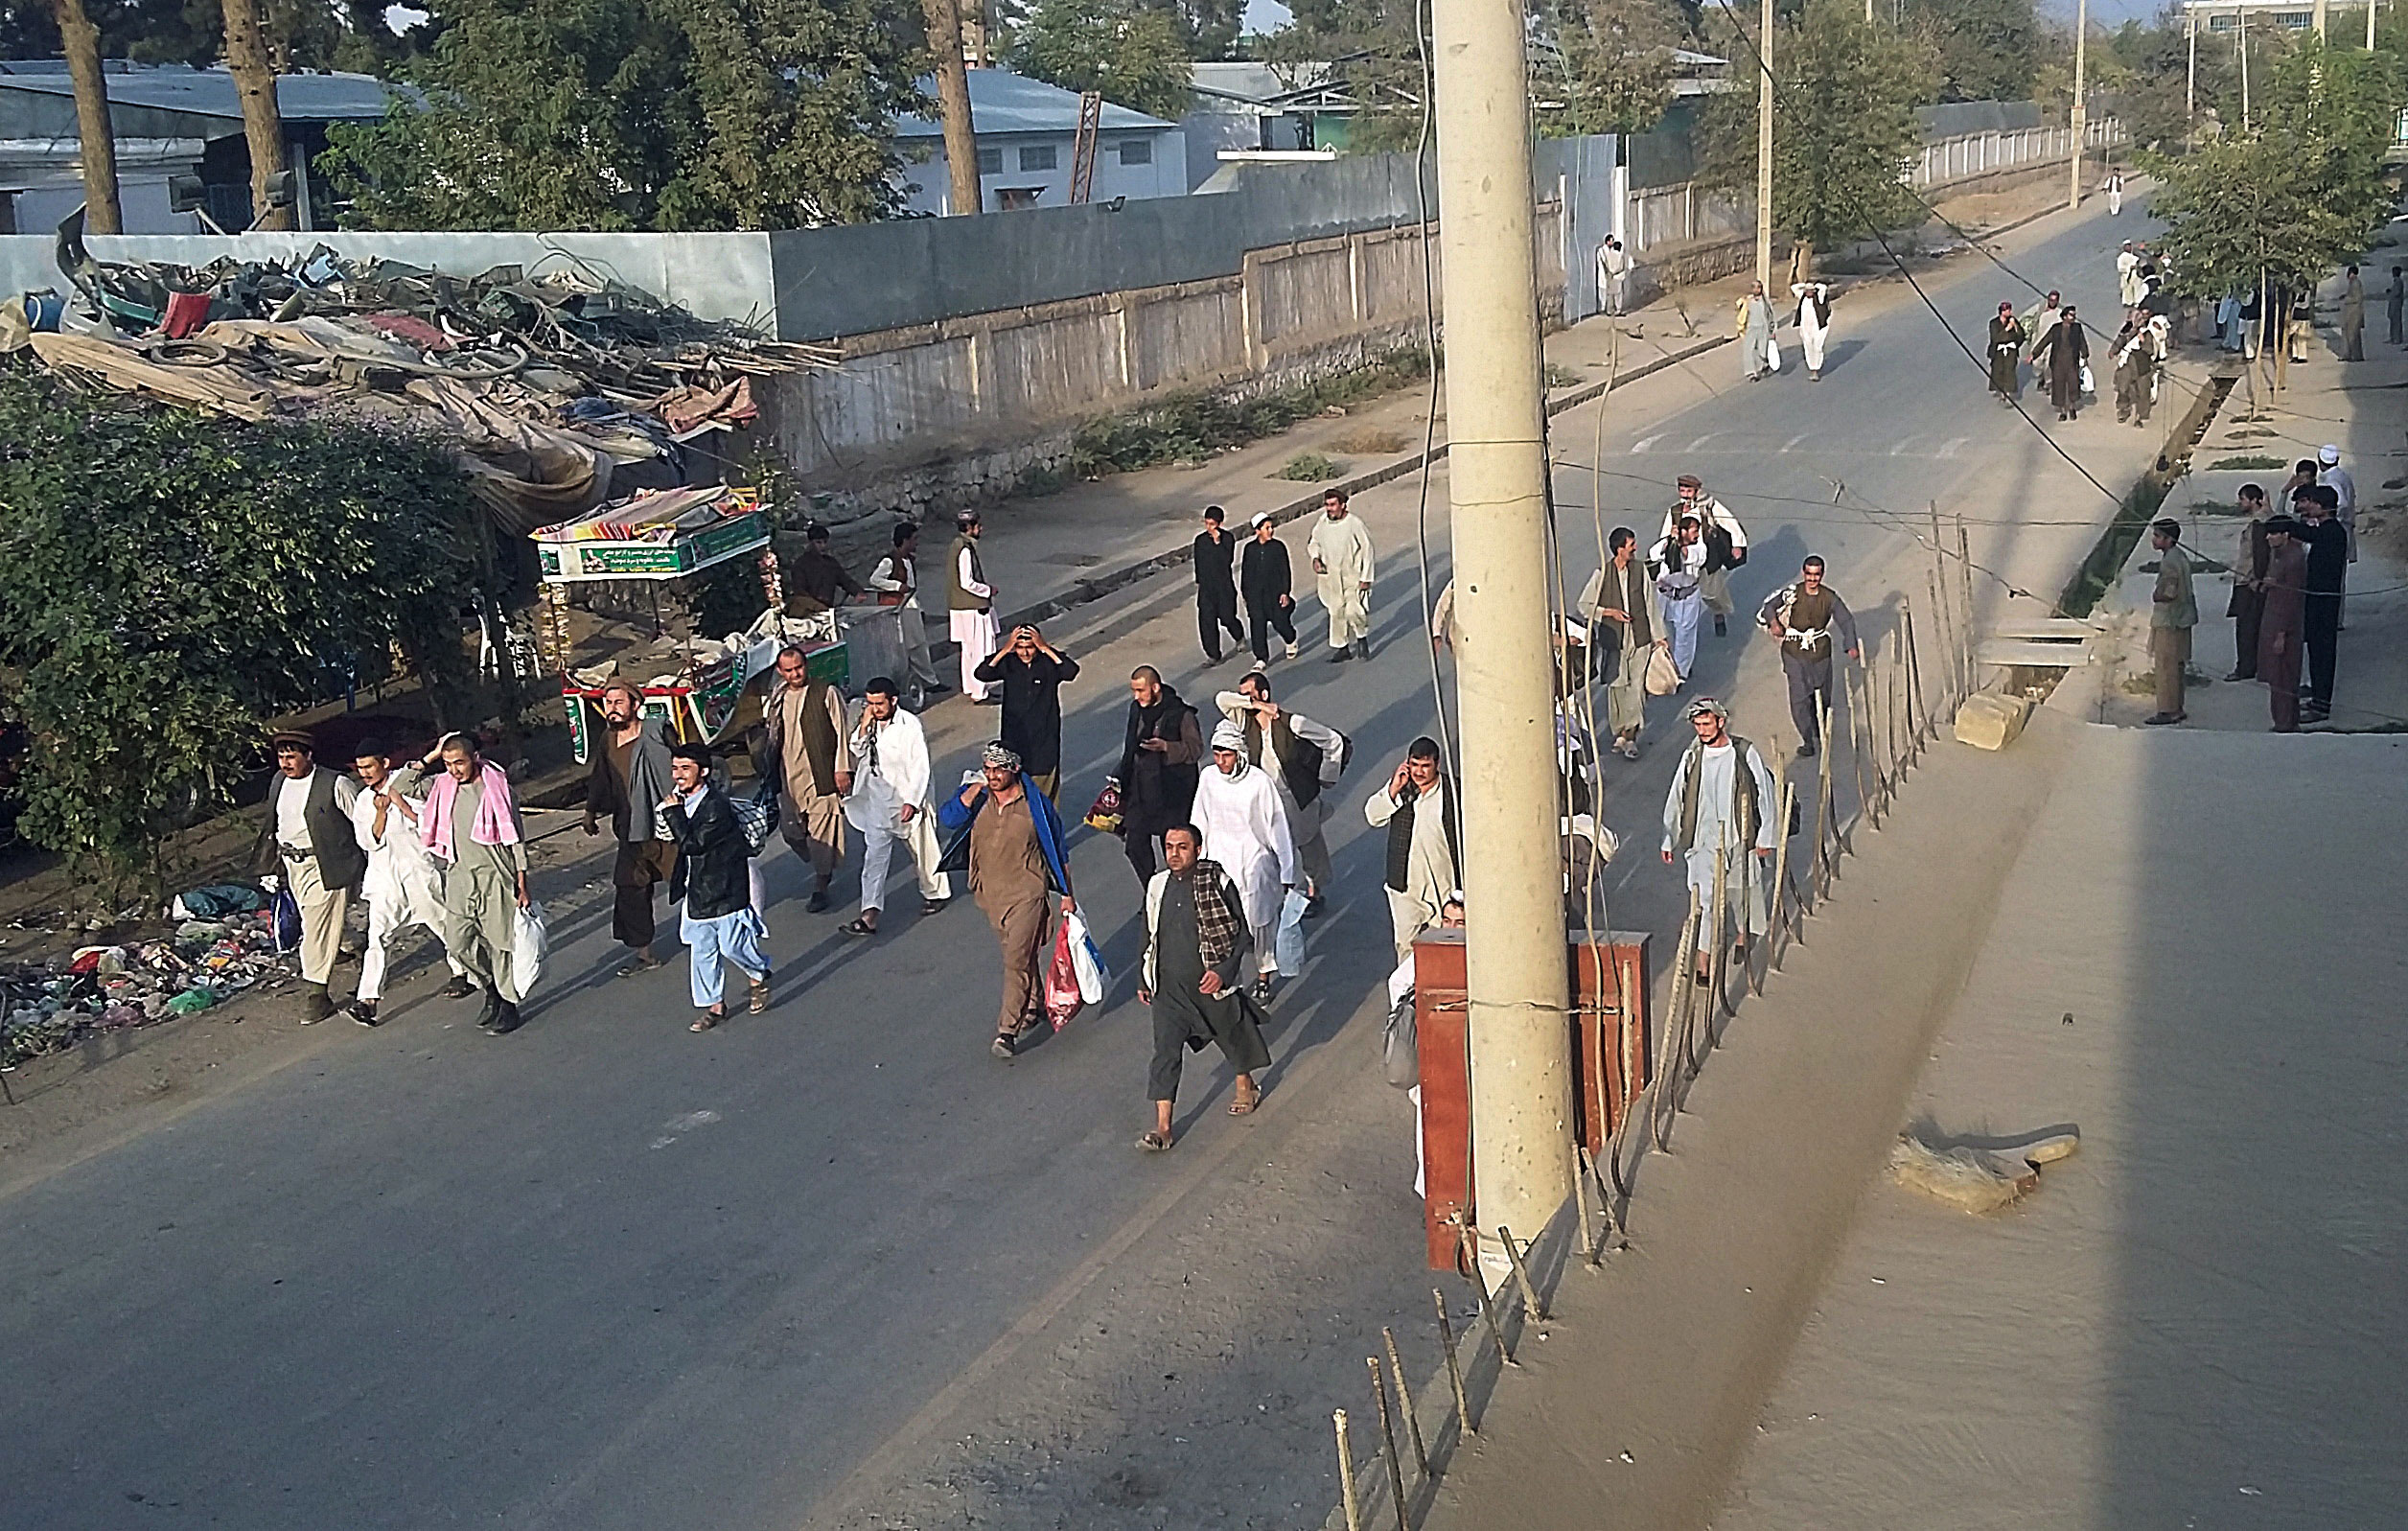 Taliban prisoners walked on a street after their comrades released them from the main jail in Kunduz on Monday [AP]